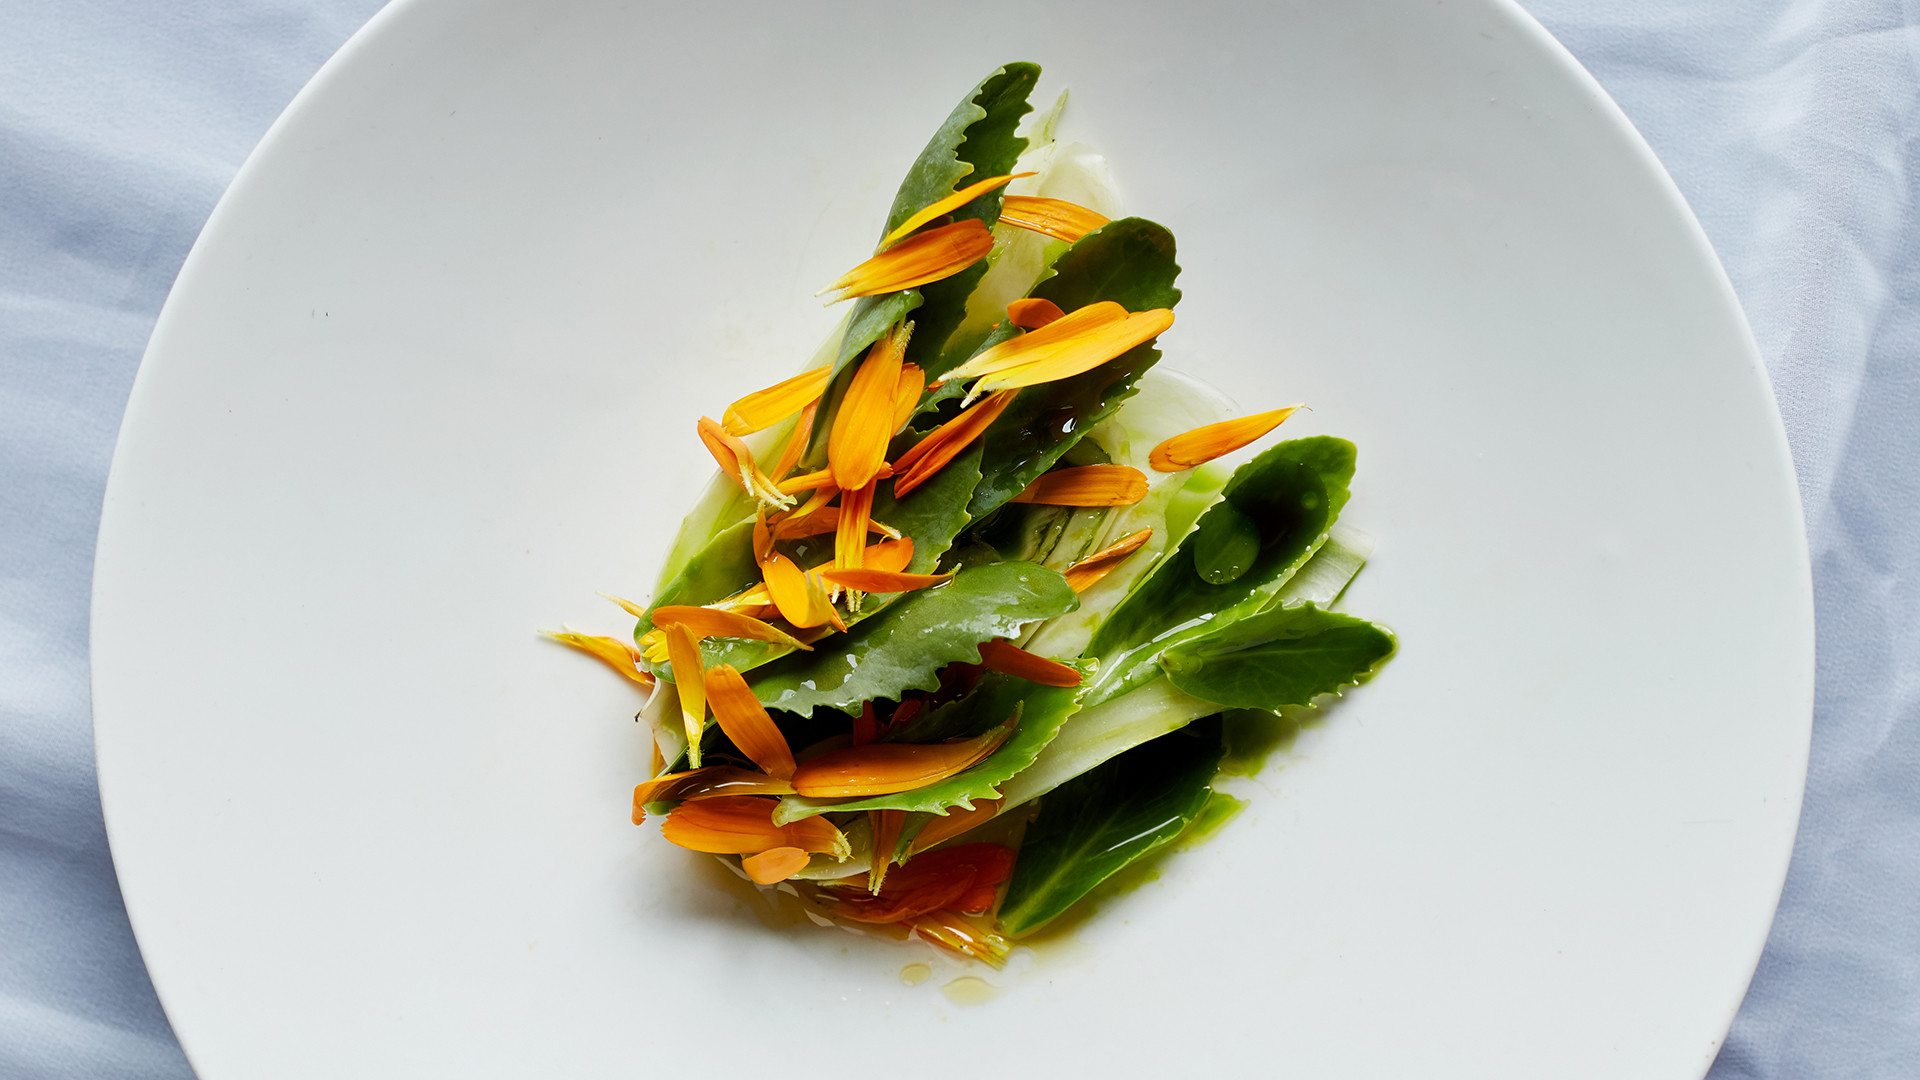 Fennel cooked in aged beef fat, orpin dressed in marigold vinegar and fresh marigold at Silo